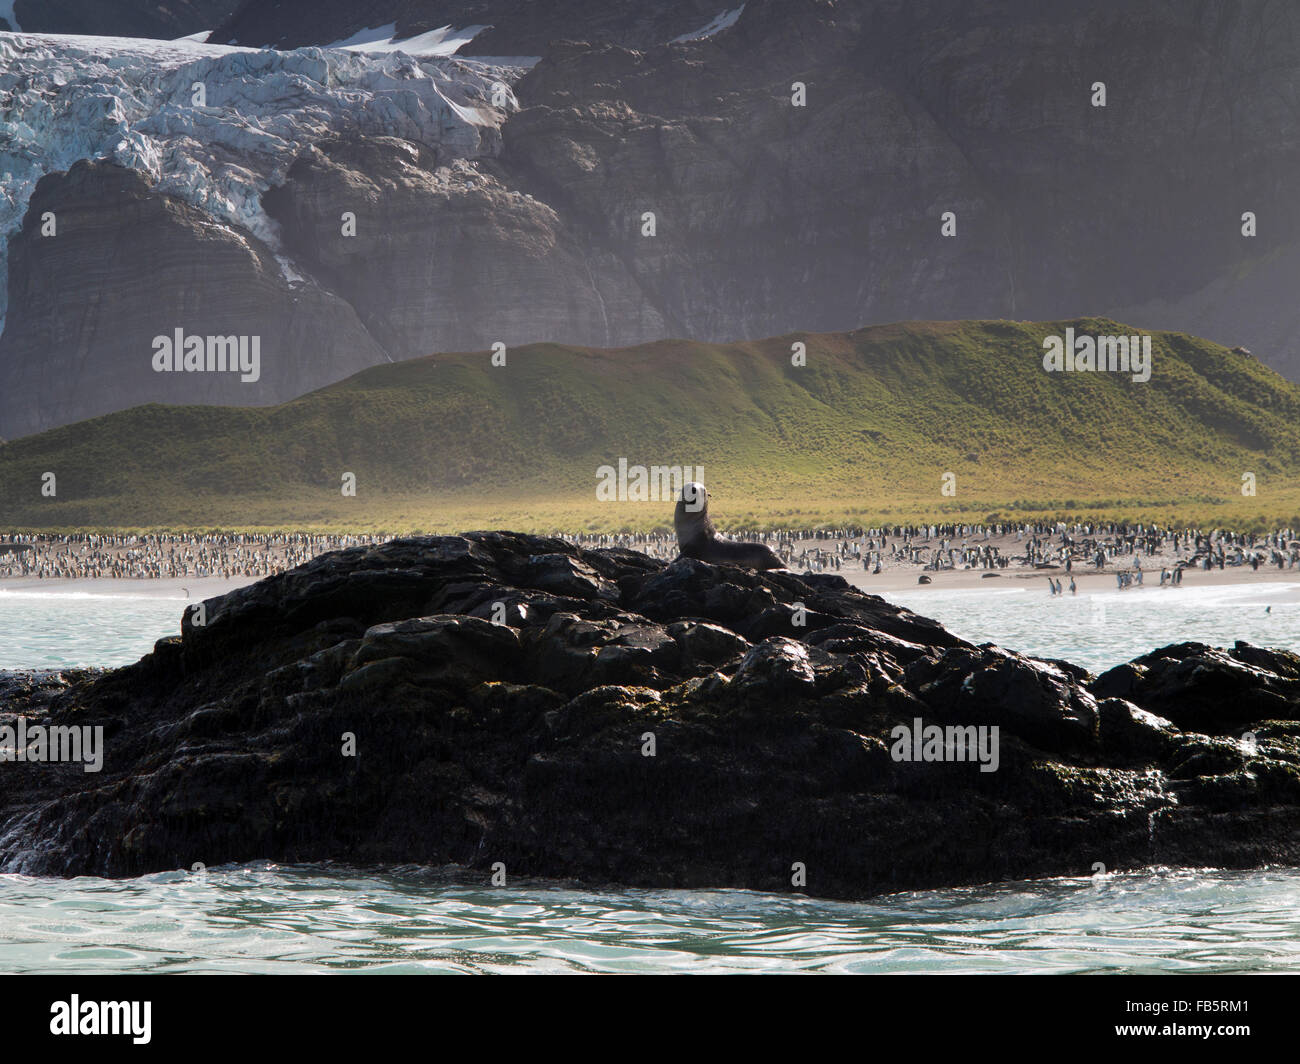 South Georgia, Gold Harbour, fur seal on rock - Stock Image